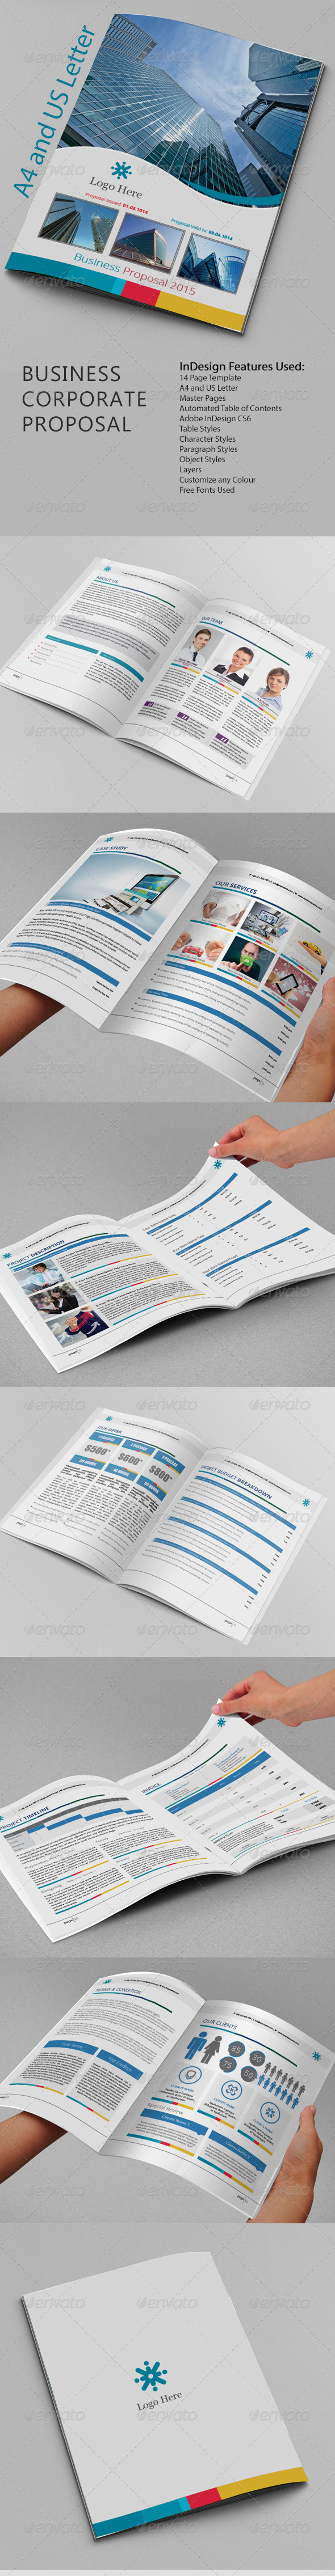 GraphicRiver Business Corporate Proposal 8328957